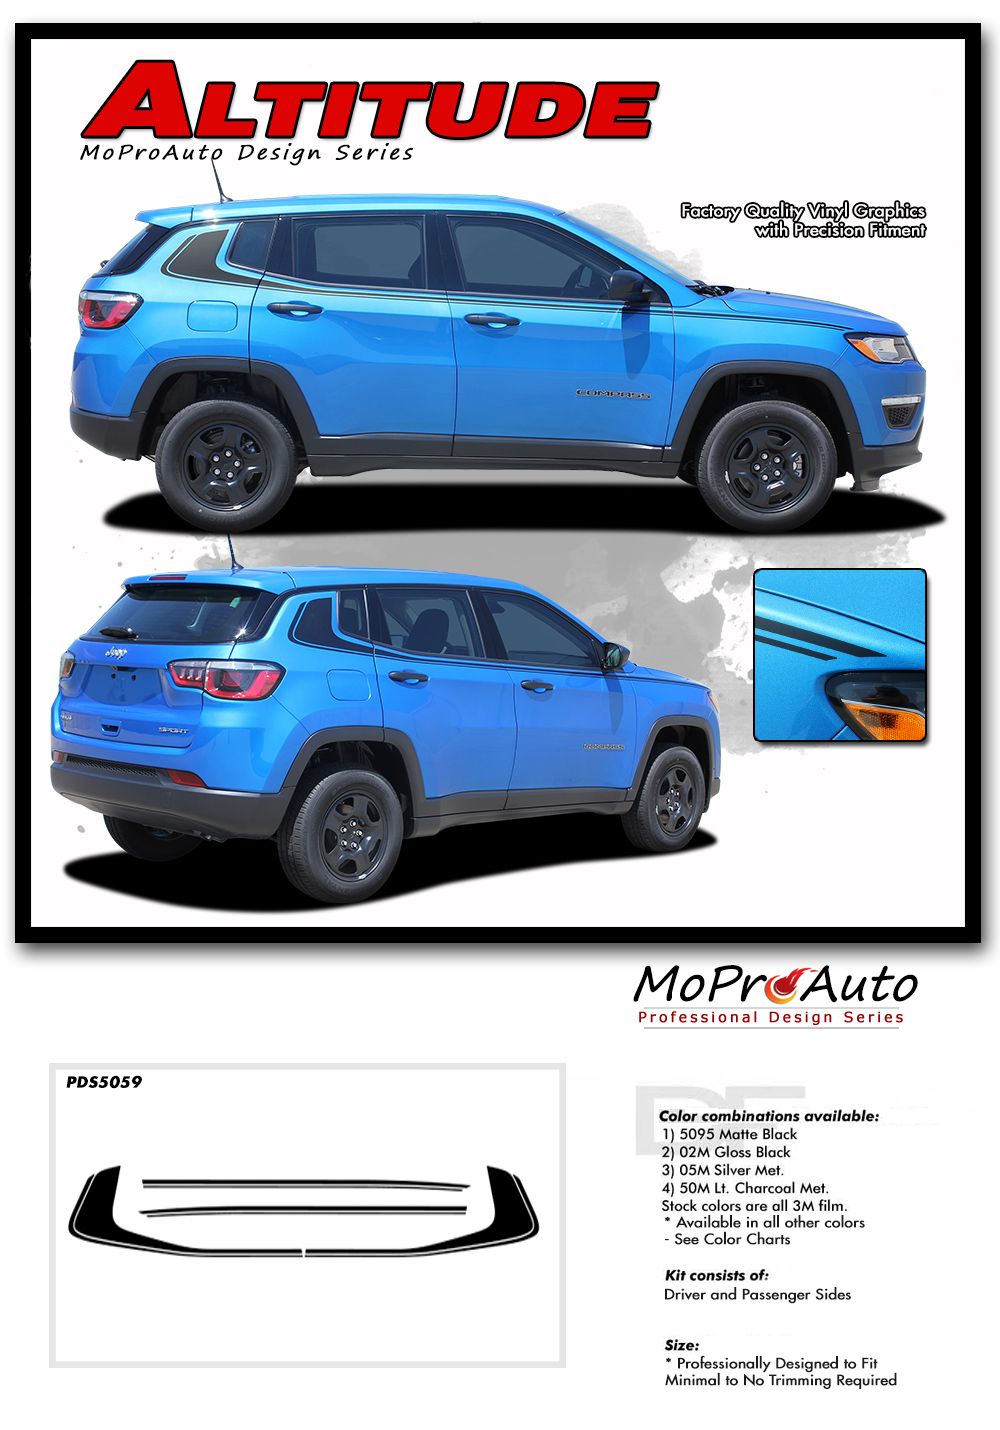 2017, 2018, 2019, 2020 Jeep Compass Vinyl Graphics Decals Stripes - MoProAuto Pro Design Series - Altitude